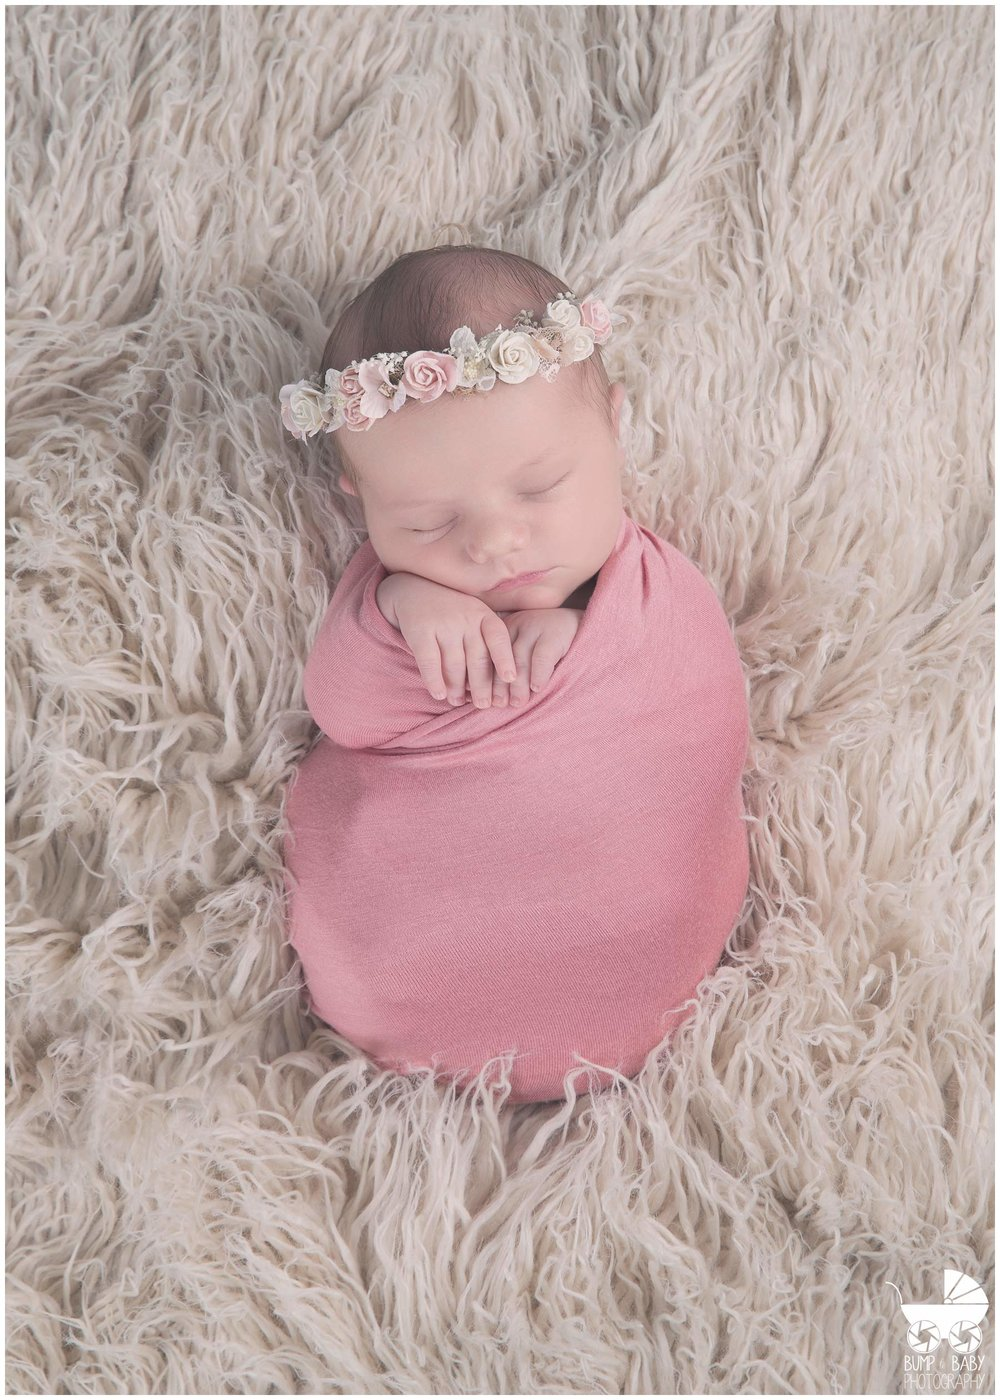 Newborn-baby-girl-swaddled-with-floral-crown.jpg